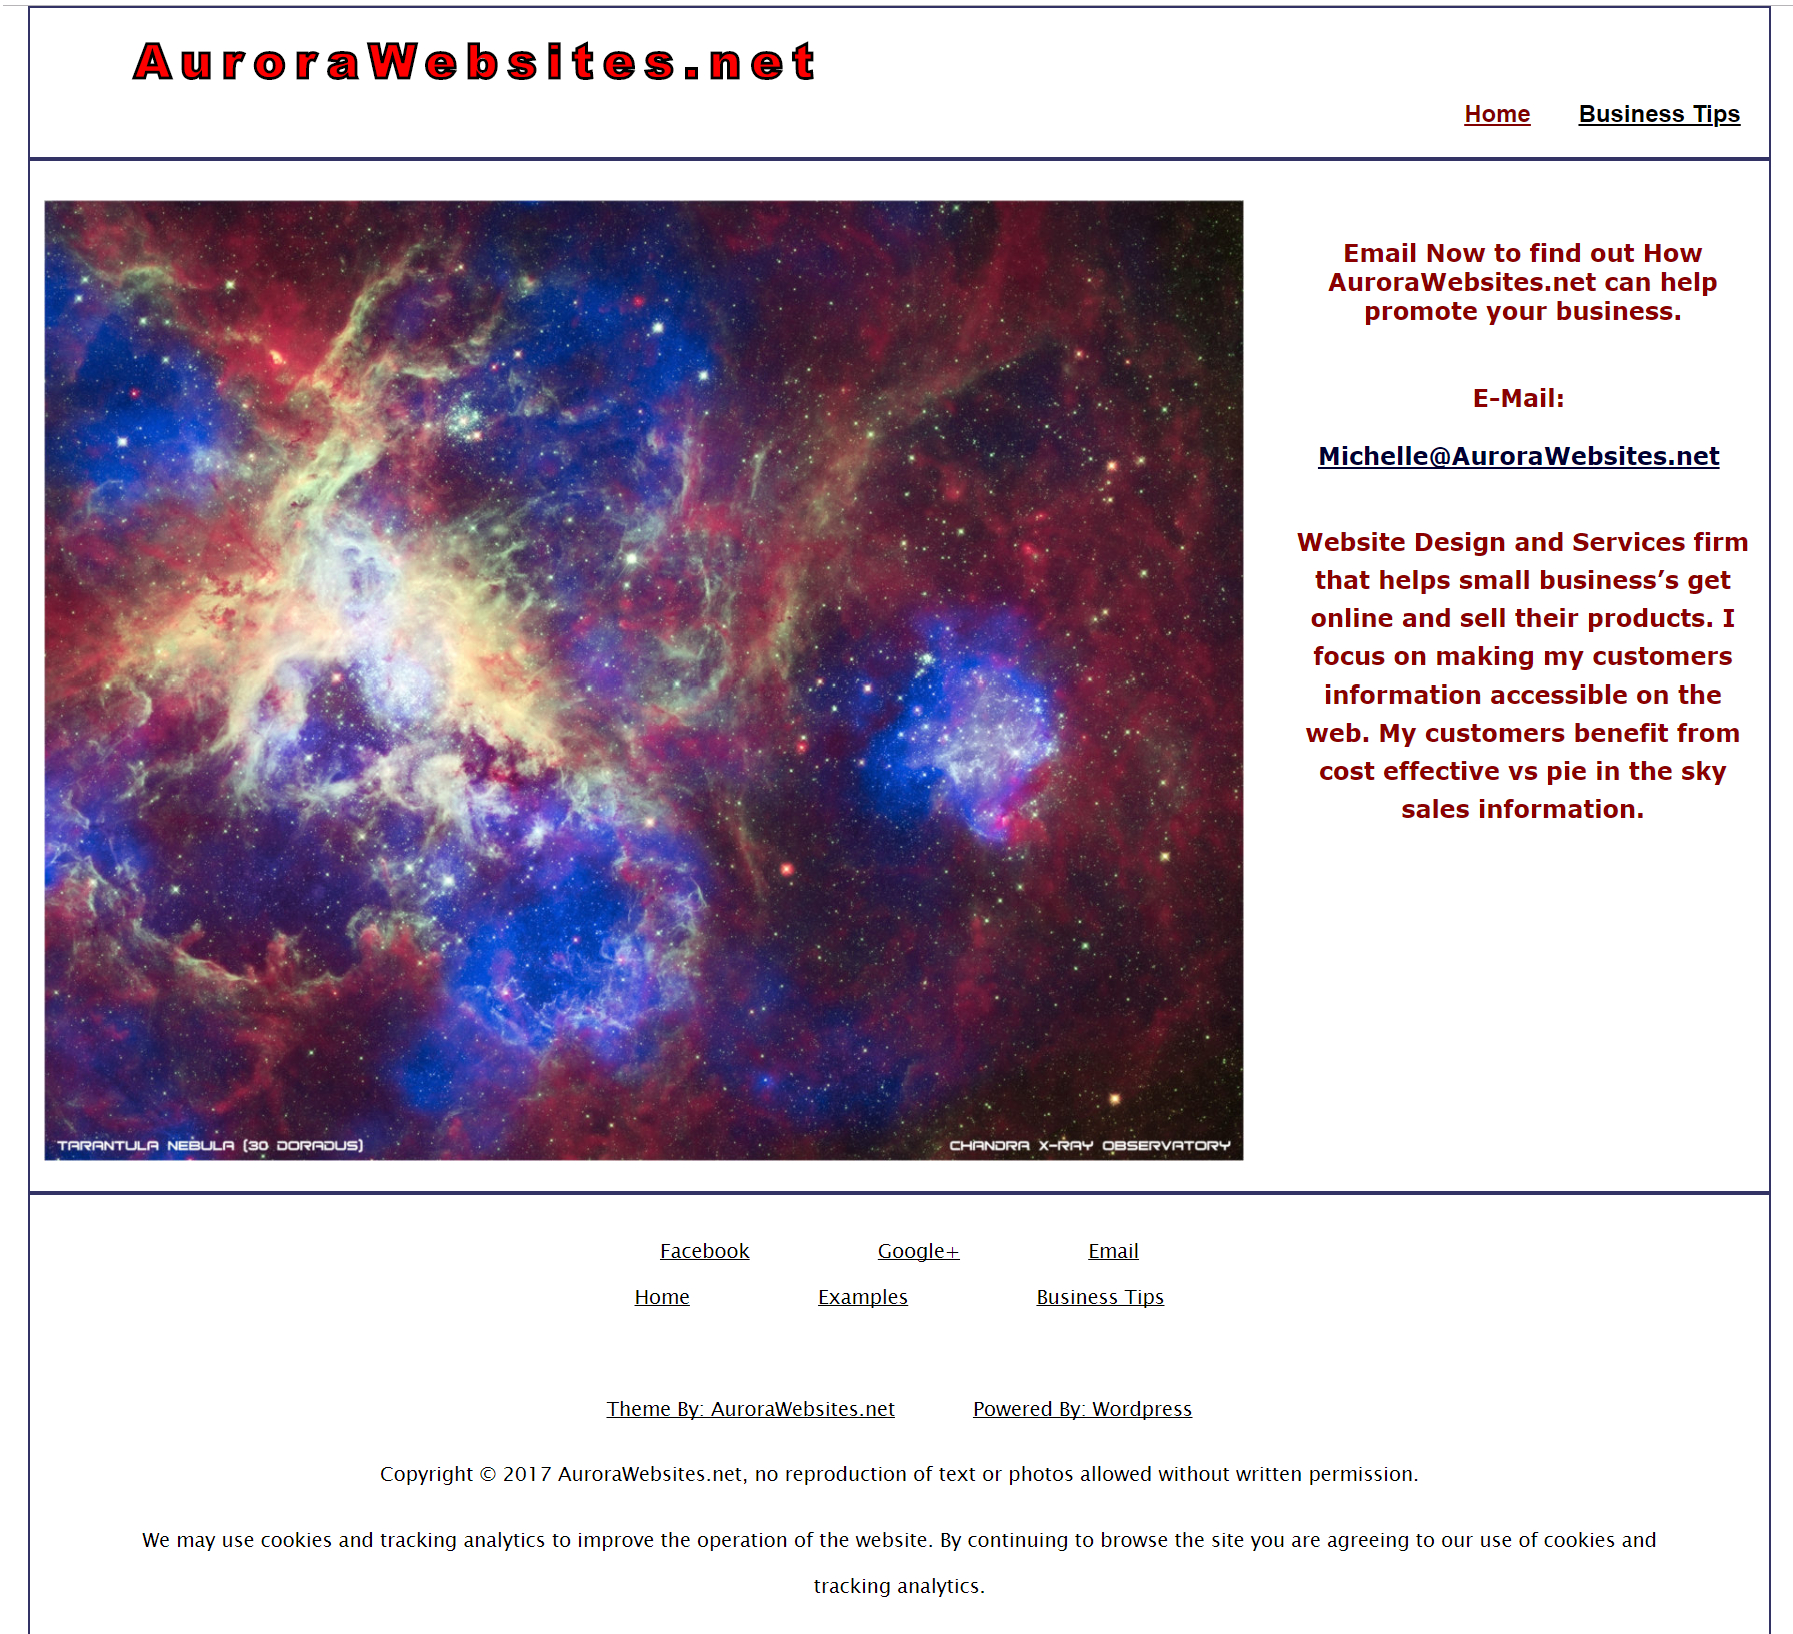 Clean Theme with white background and dark red text. Large picture of a nebula from a telescope.